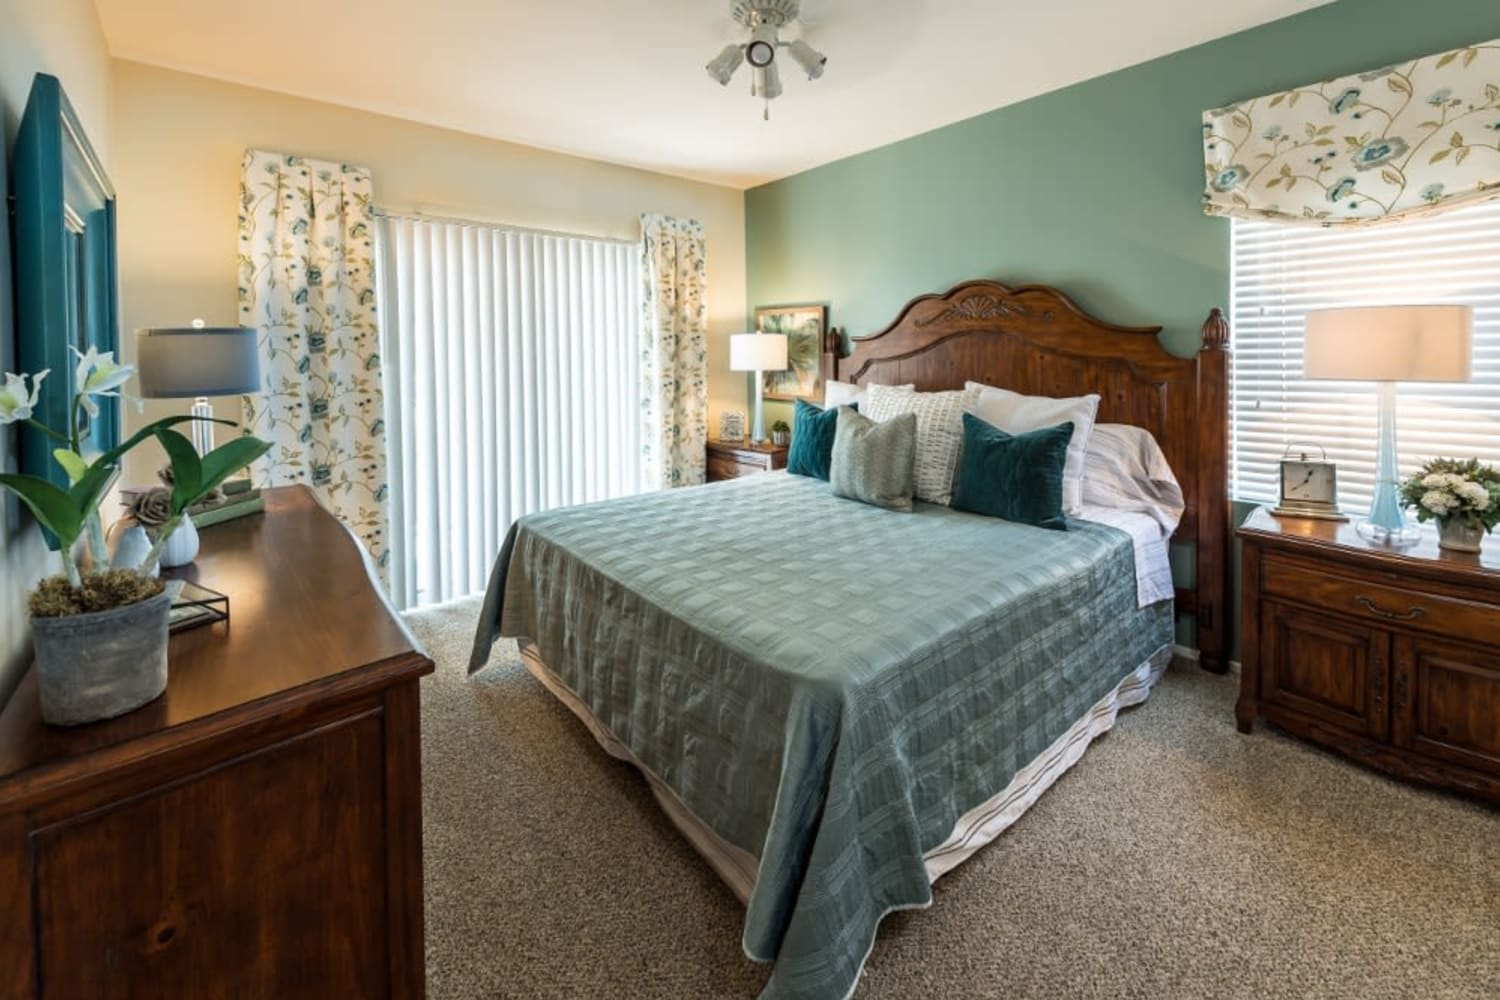 Enjoy spacious bedrooms at Village on the Green in Rancho Cucamonga, California